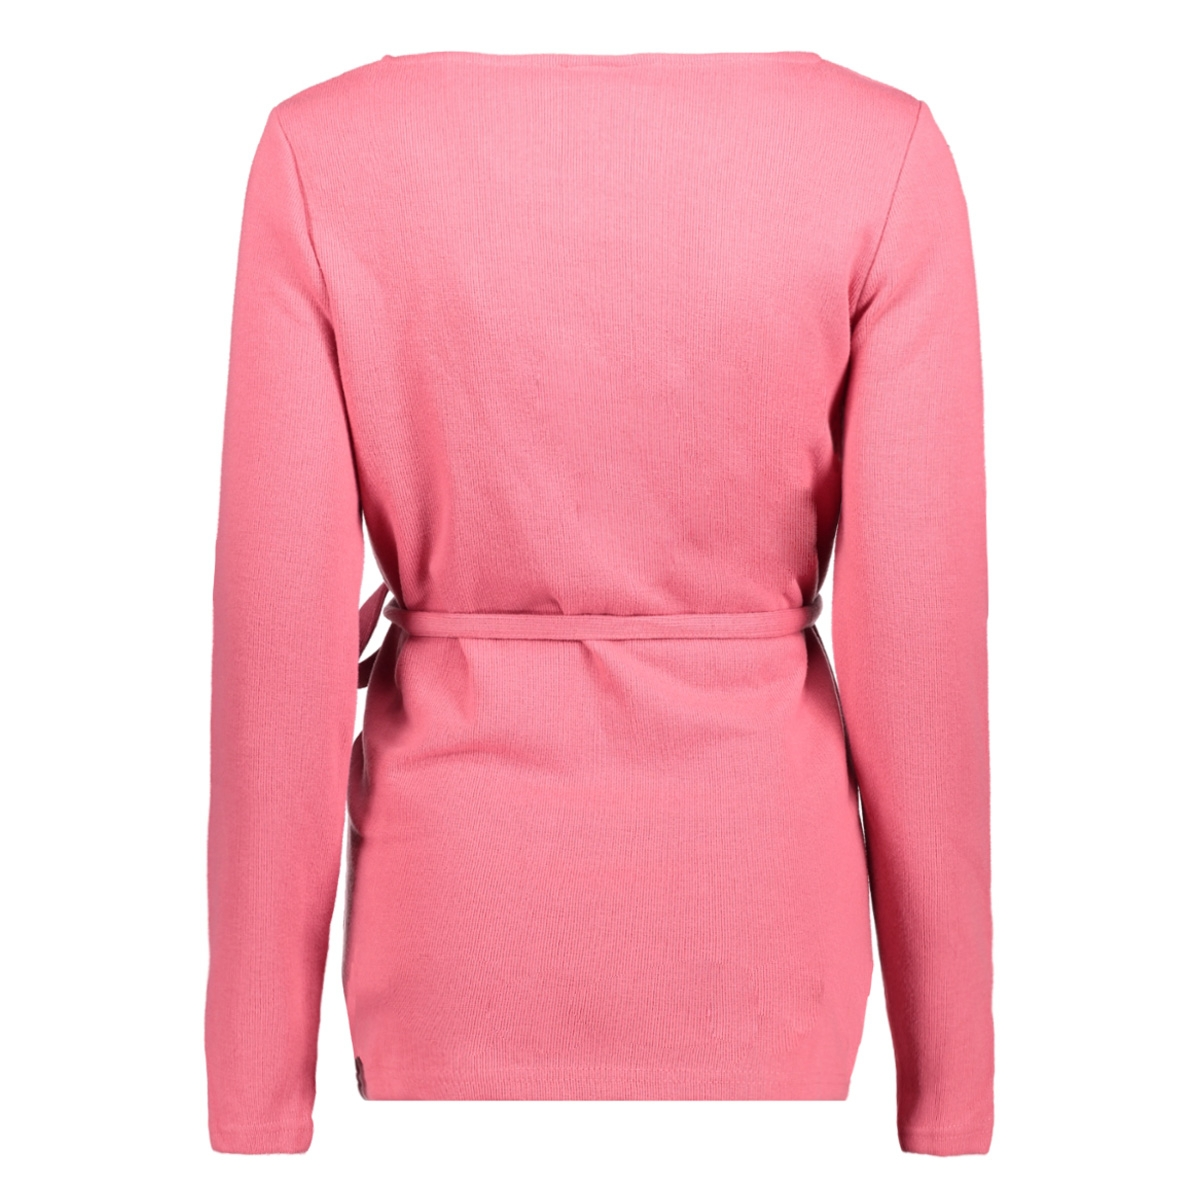 mlamy l/s jersey top 20008105 mama-licious positie trui rapture rose